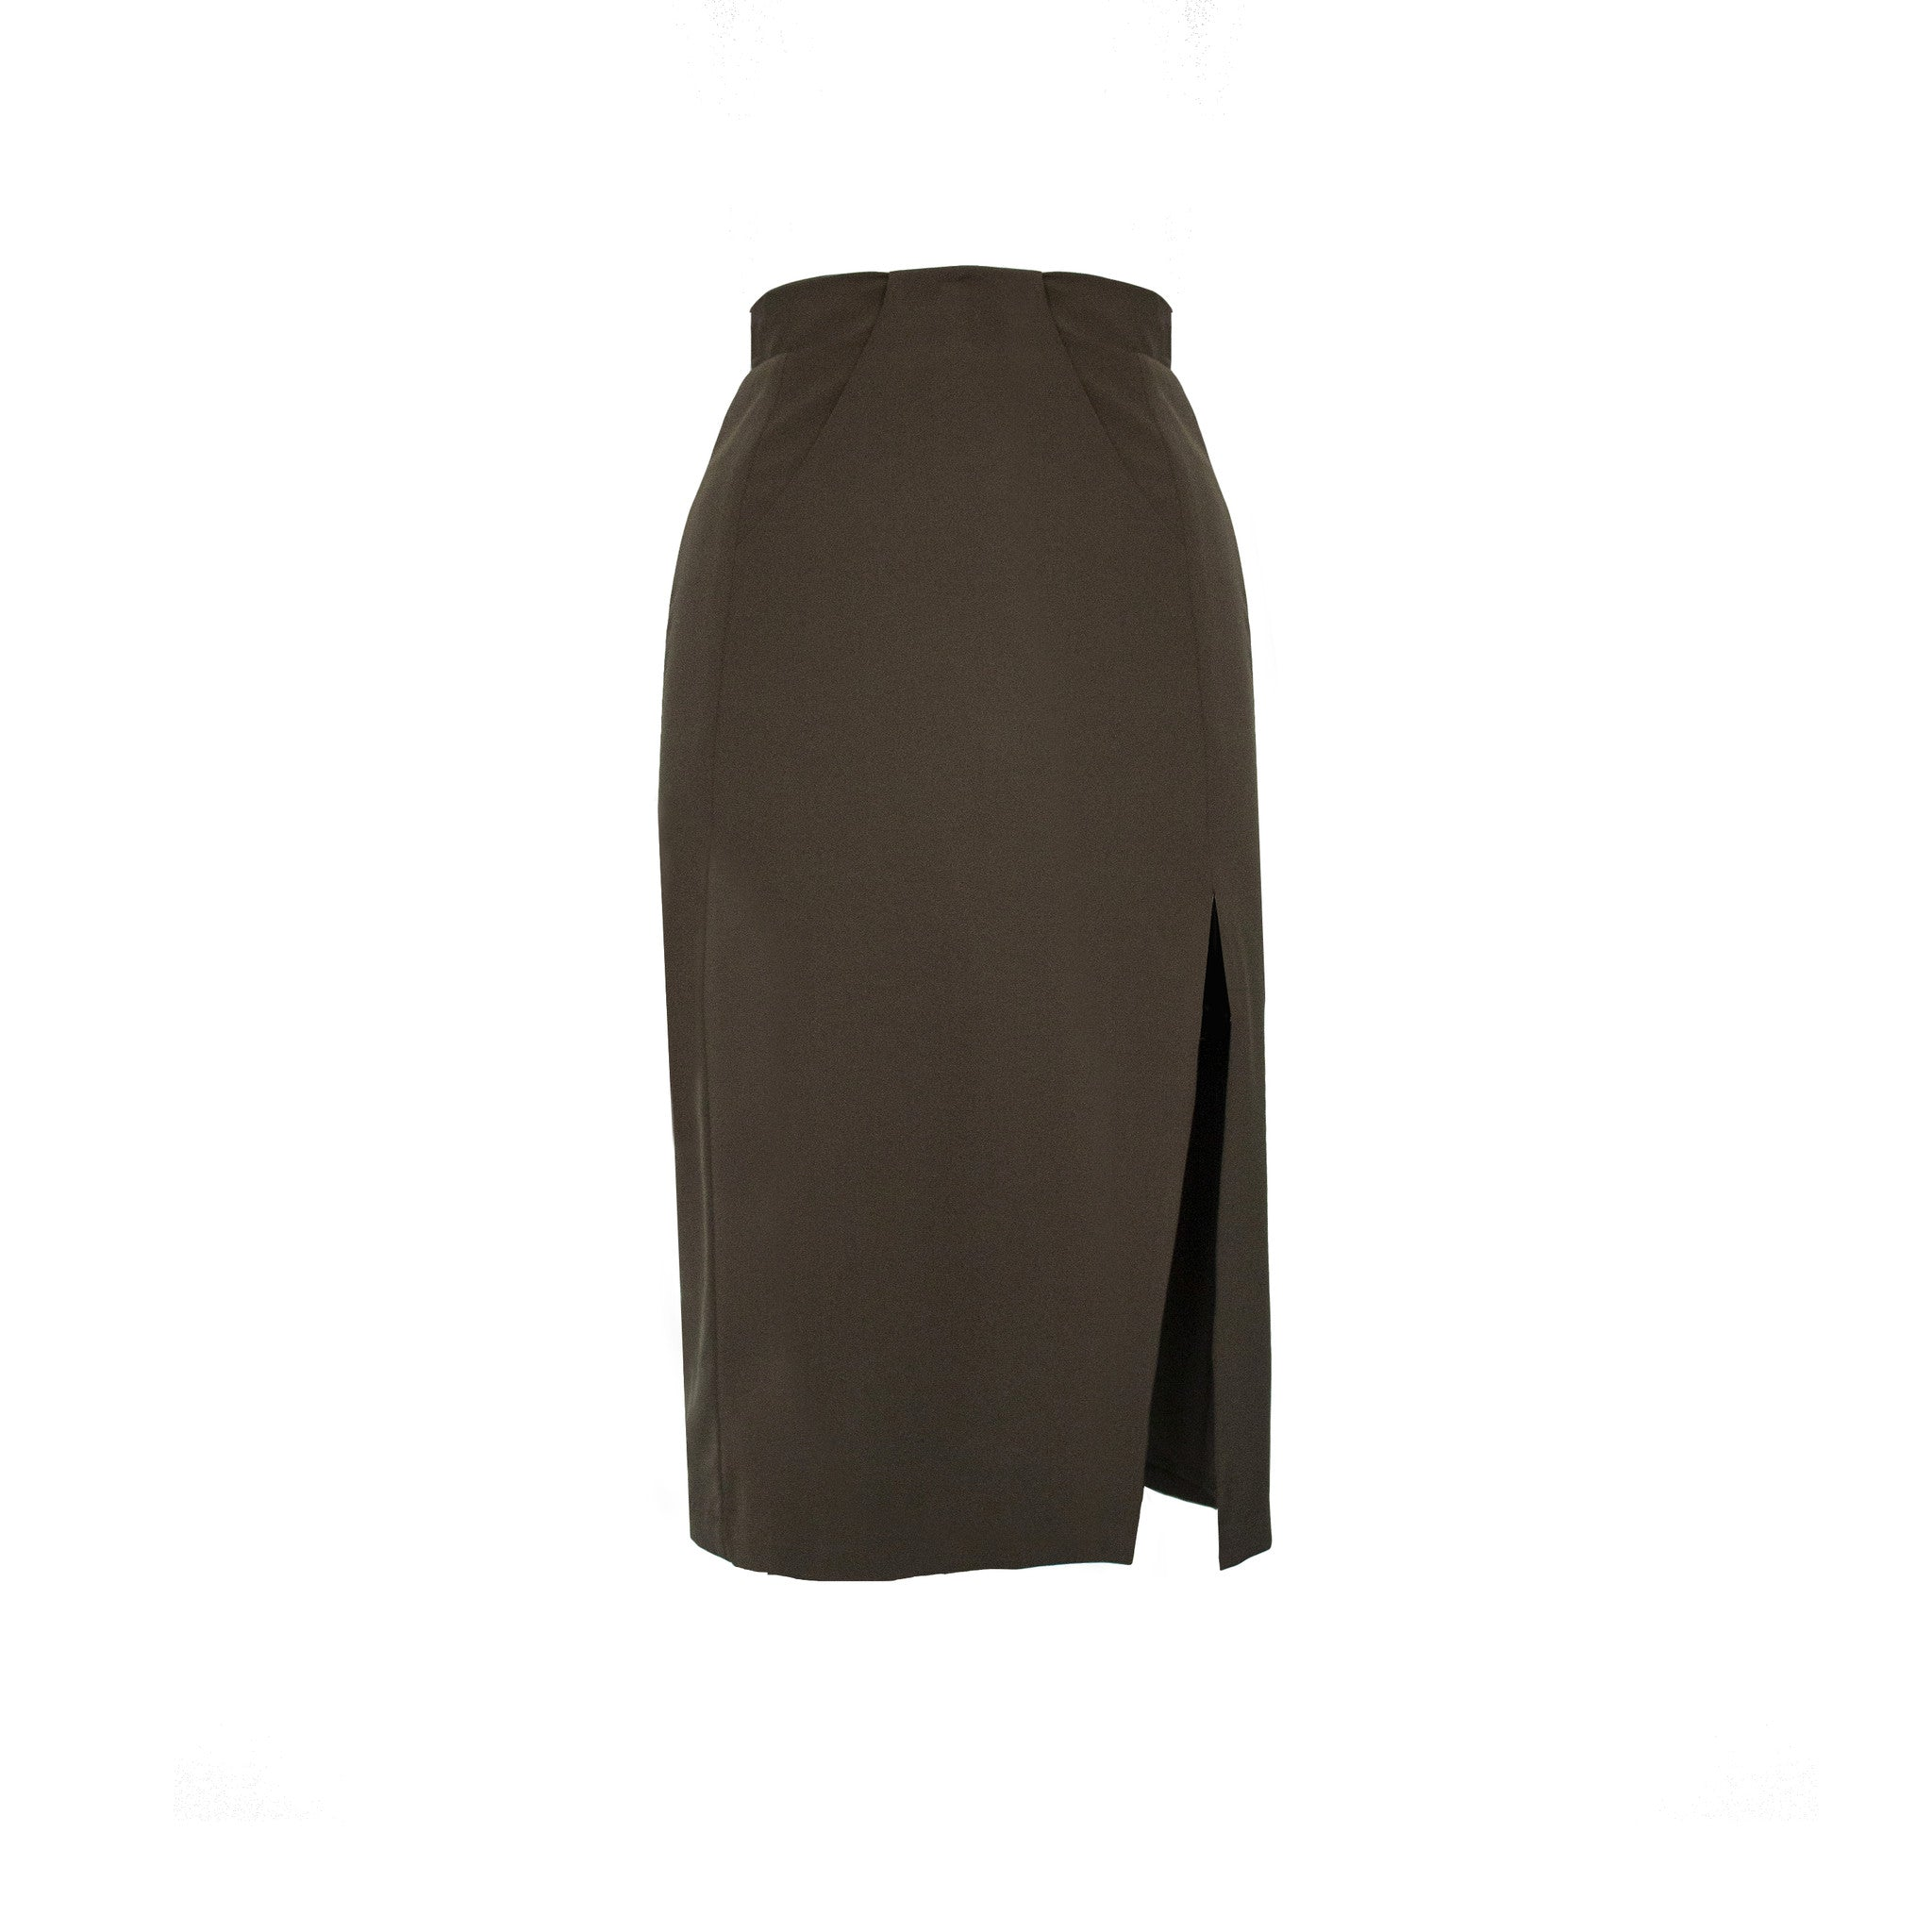 Polina Skirt in Olive